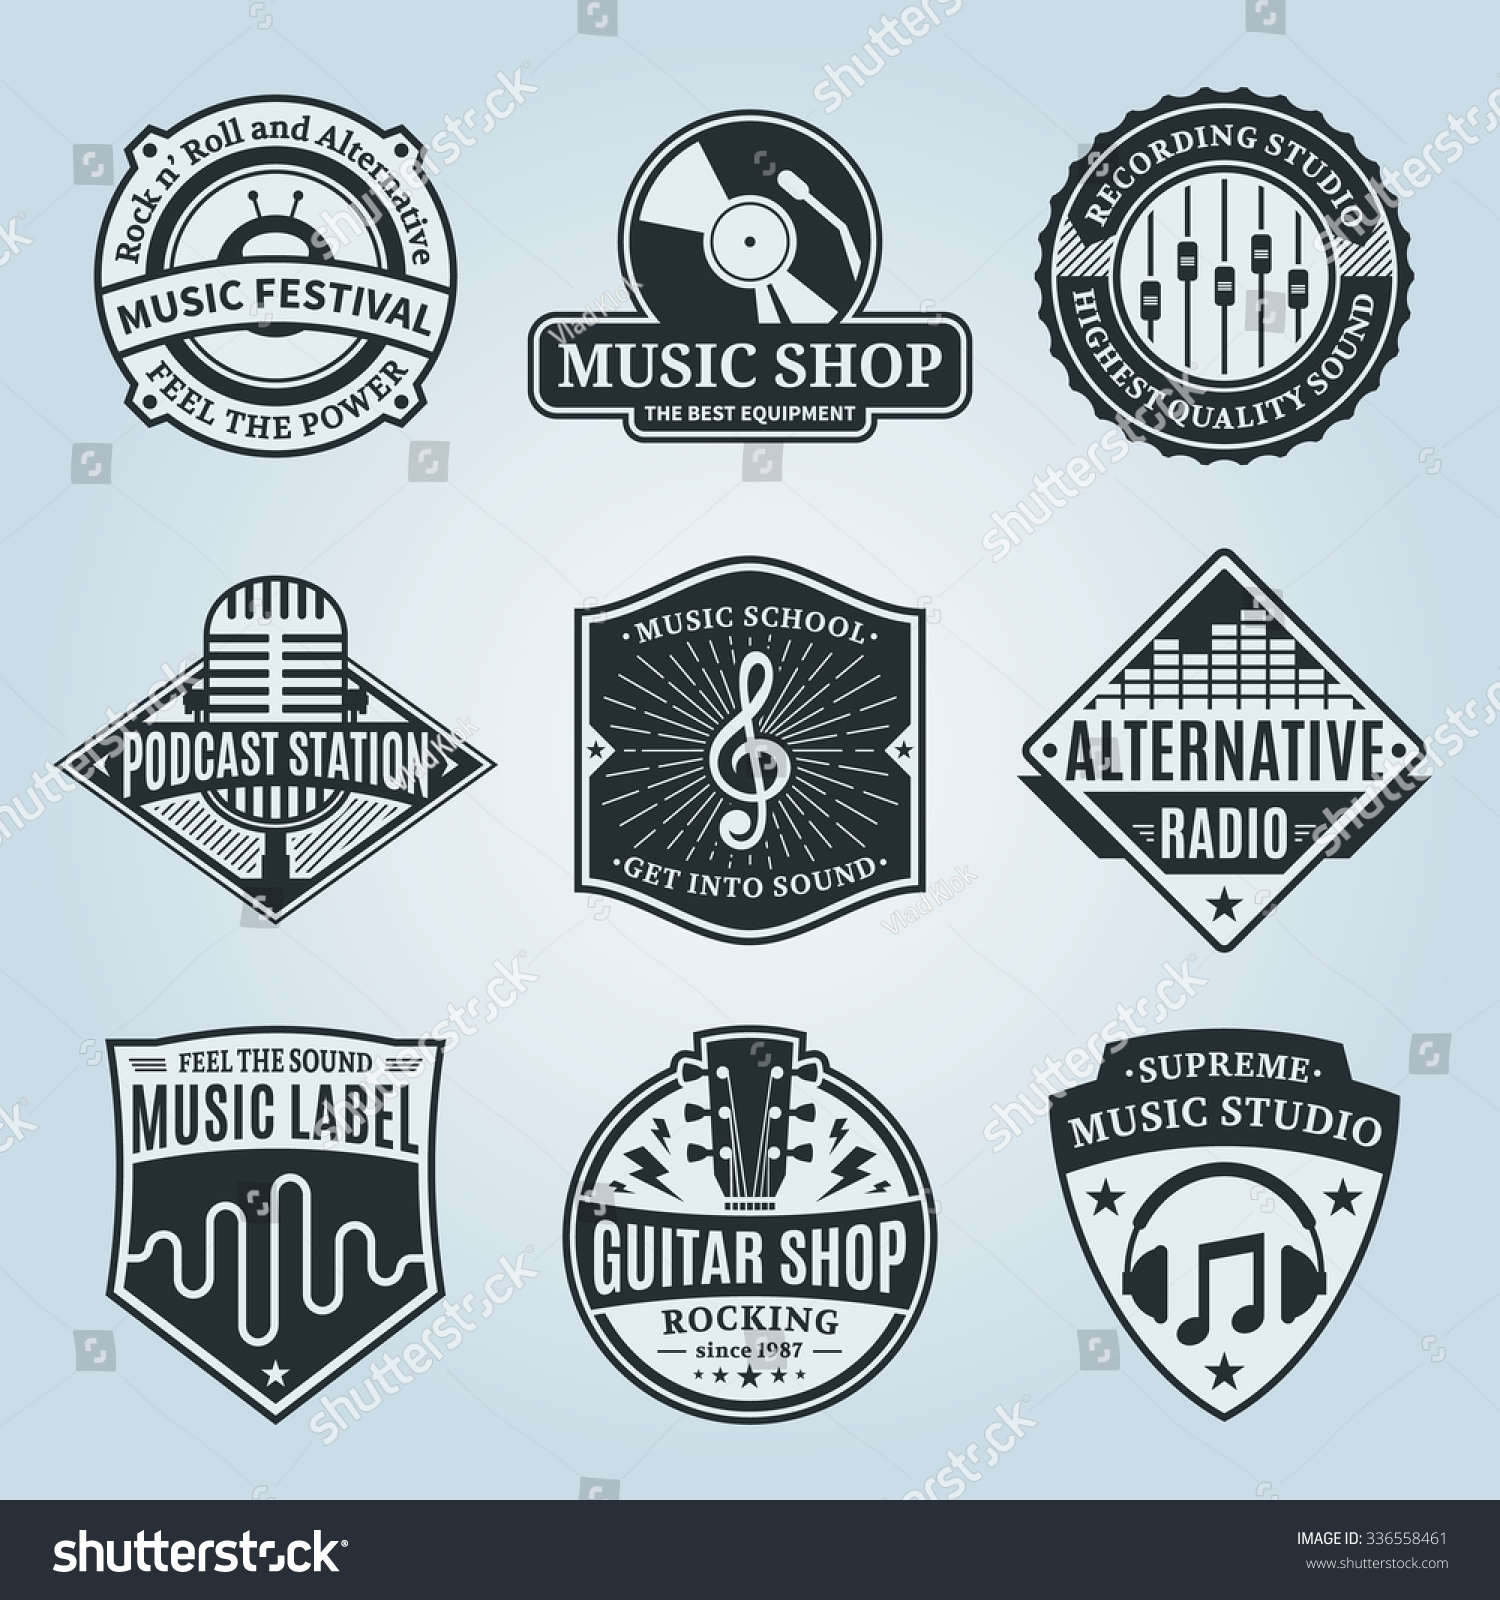 Set of vector music logo Music studio festival radio school and shop labels with sample text Music icons for audio store recording studio label podcast and radio station branding and identity